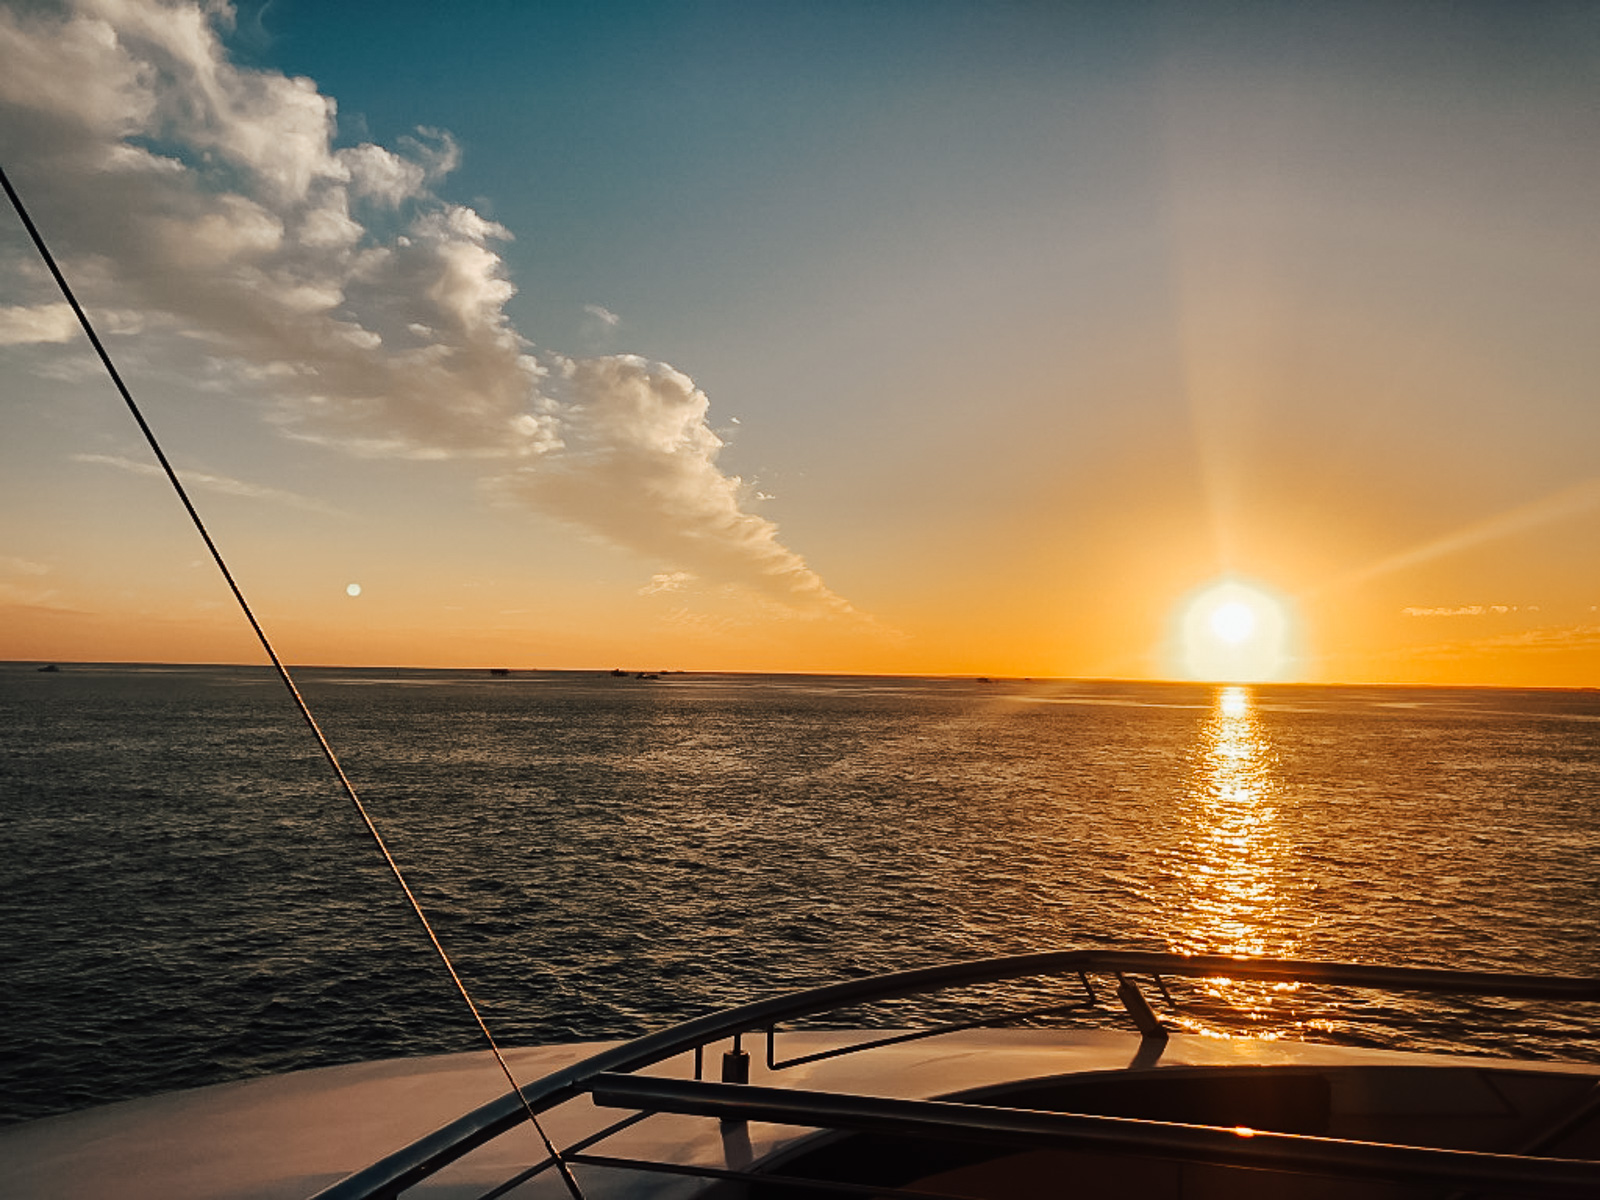 Sunset on the yacht!